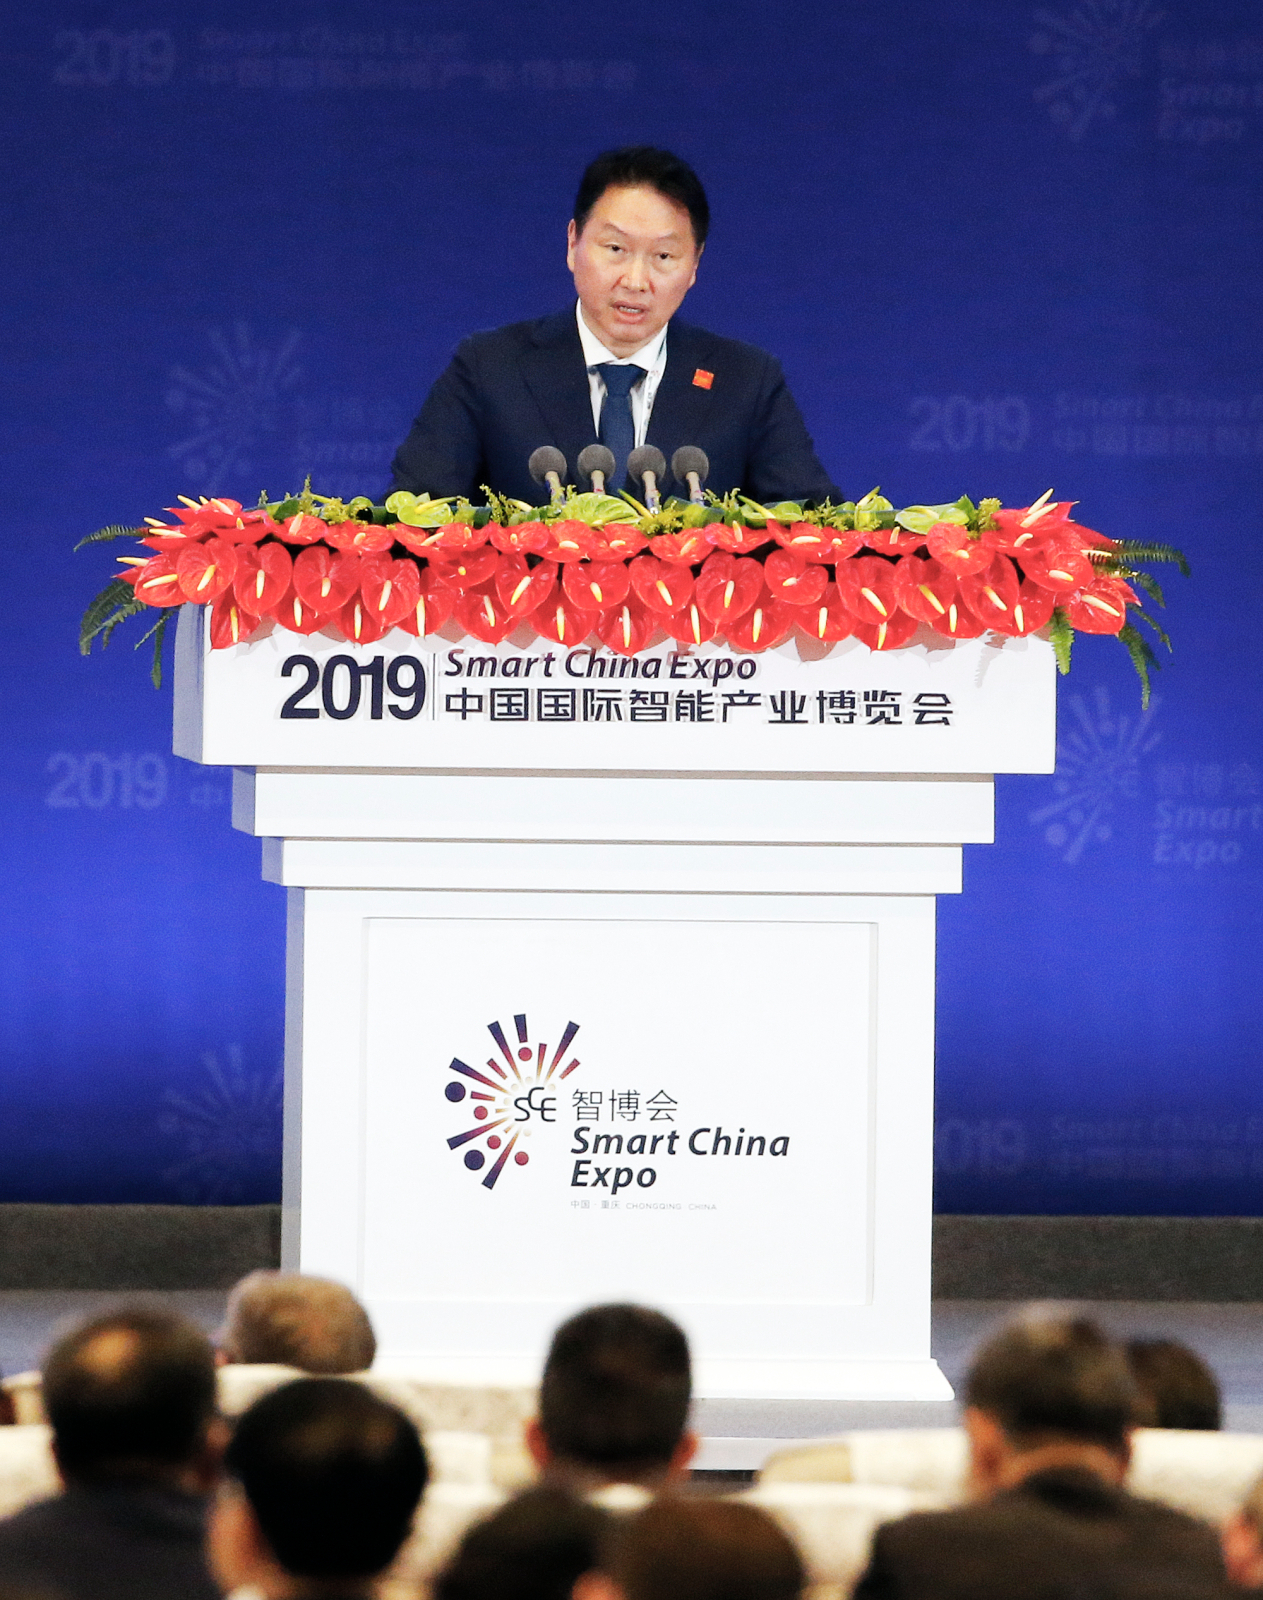 SK Group Chairman Chey Tae-won speaks at the opening ceremony of the Smart China Expo in Chongqing on Monday. (SK Group)